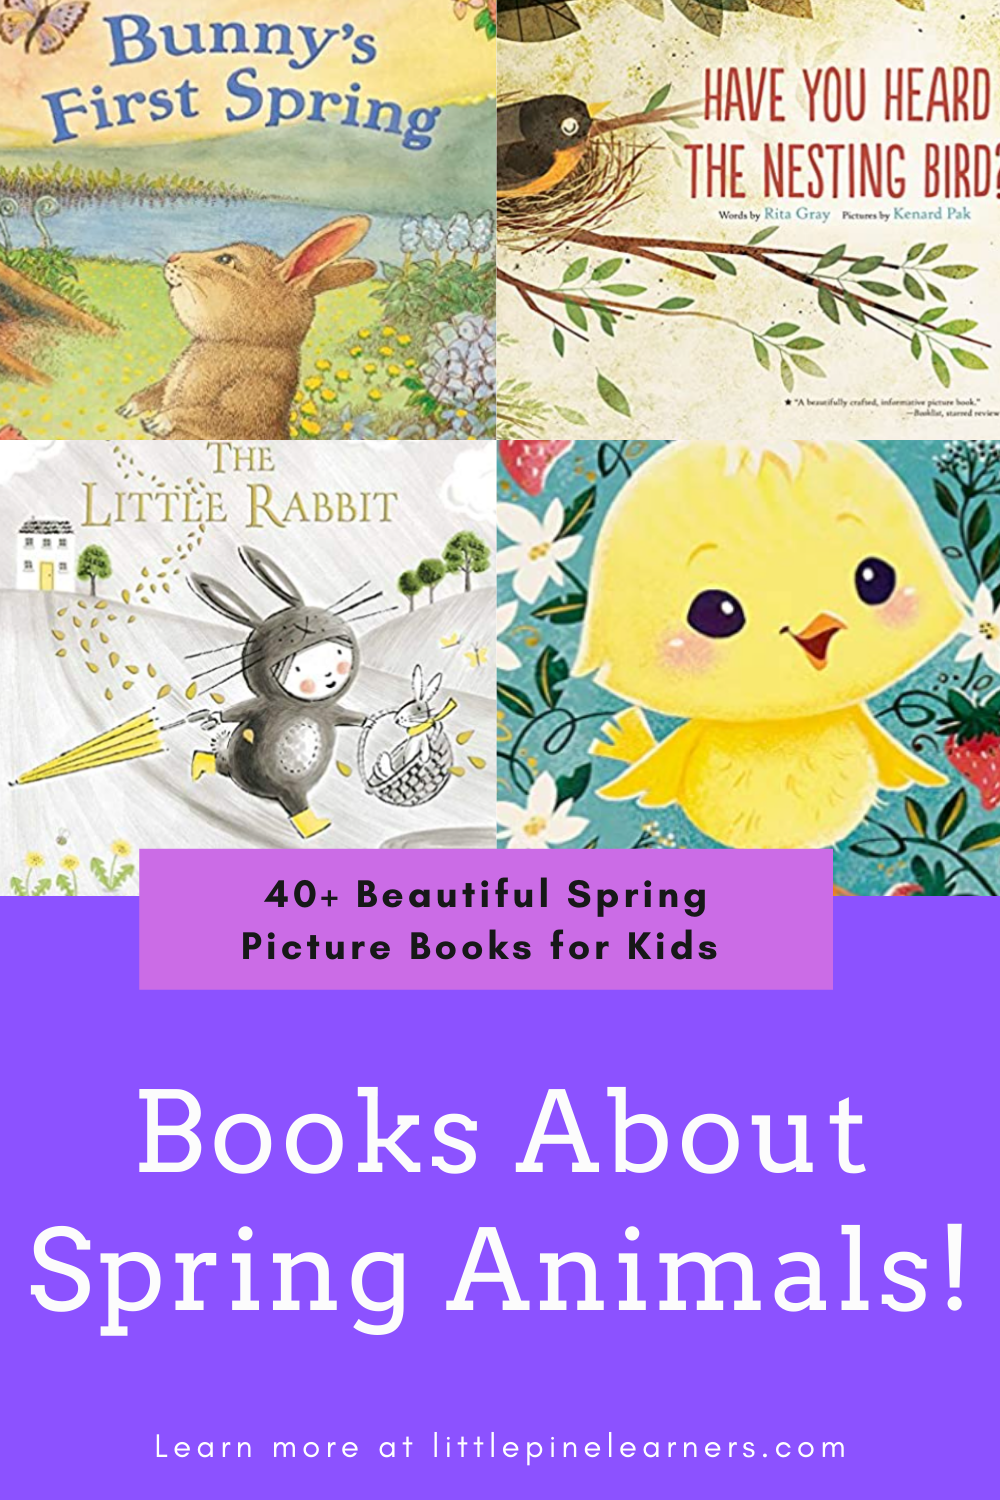 Check out 40+ nature-inspired spring books for kids right here in one spot!